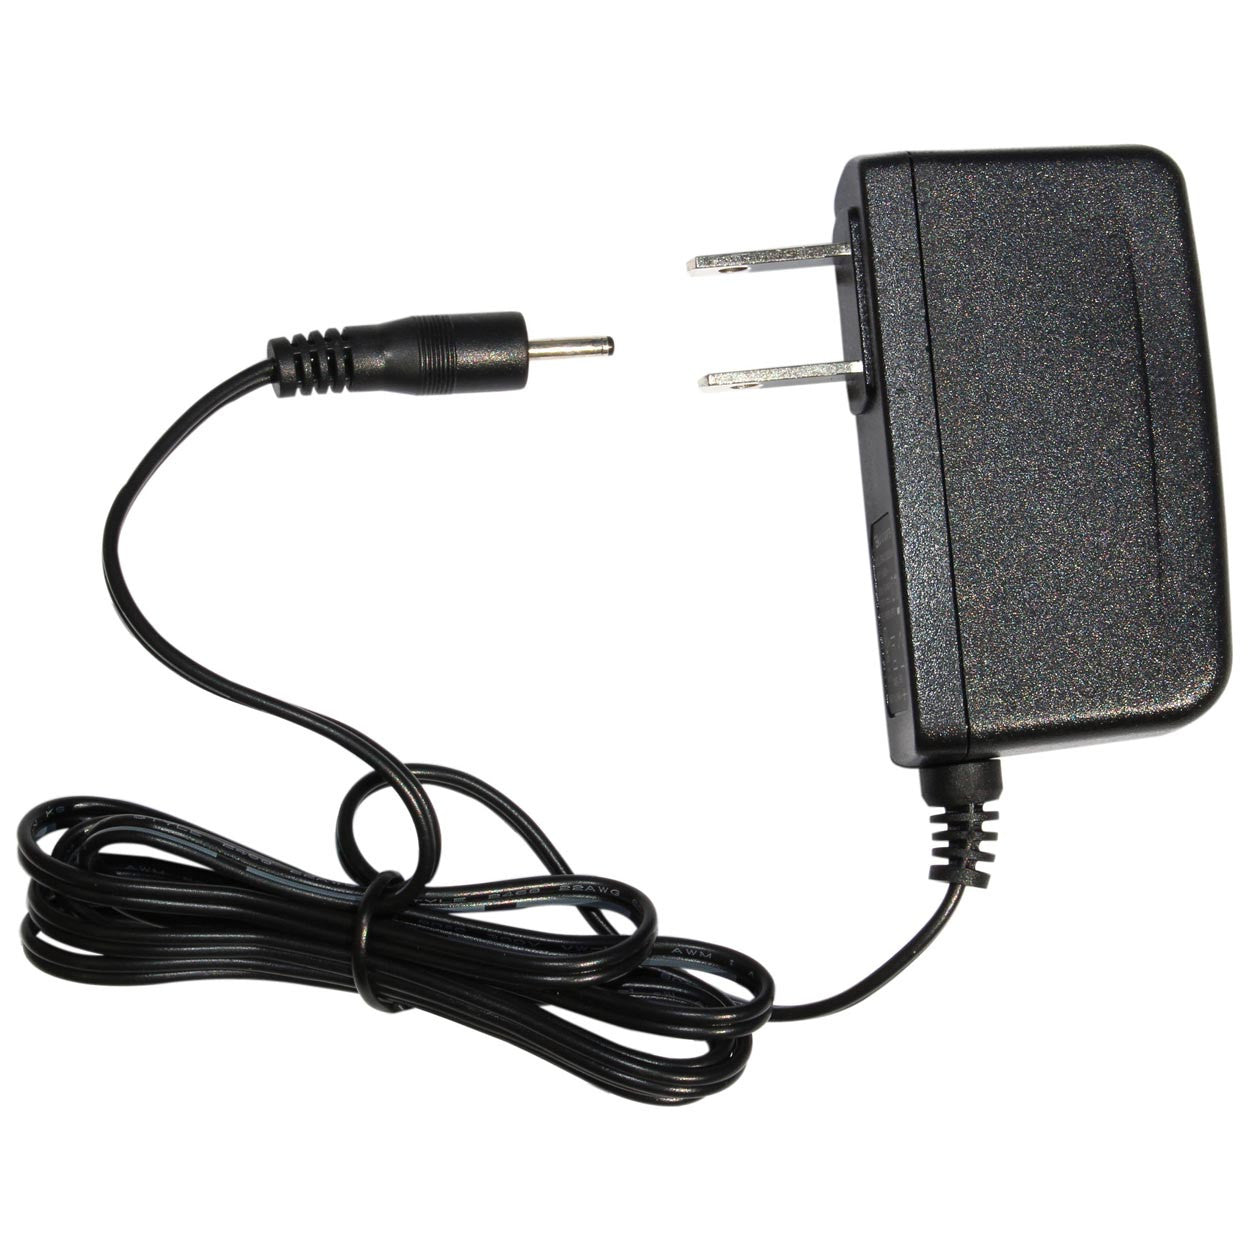 Pin Type AC Adapter for Android Tablet (TM1088, TM1088C)